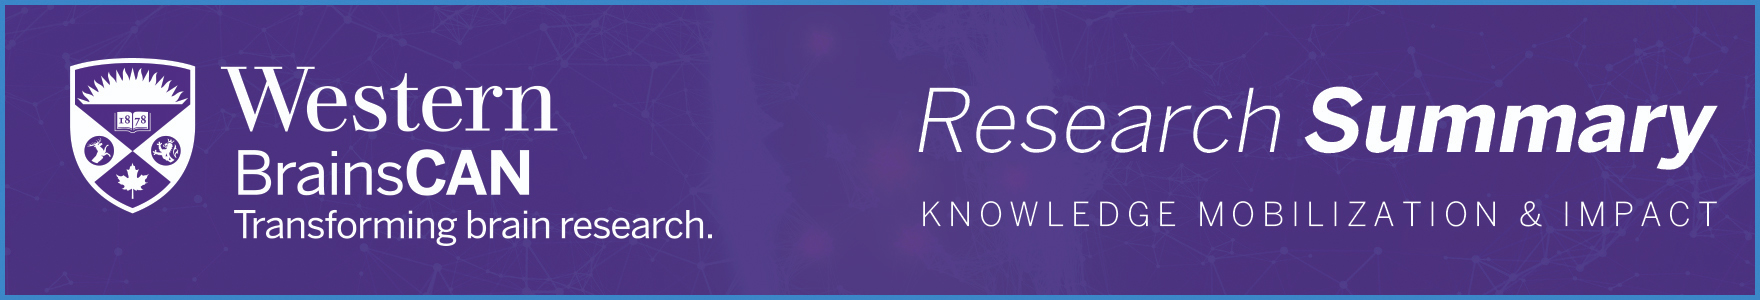 Research Summary Banner